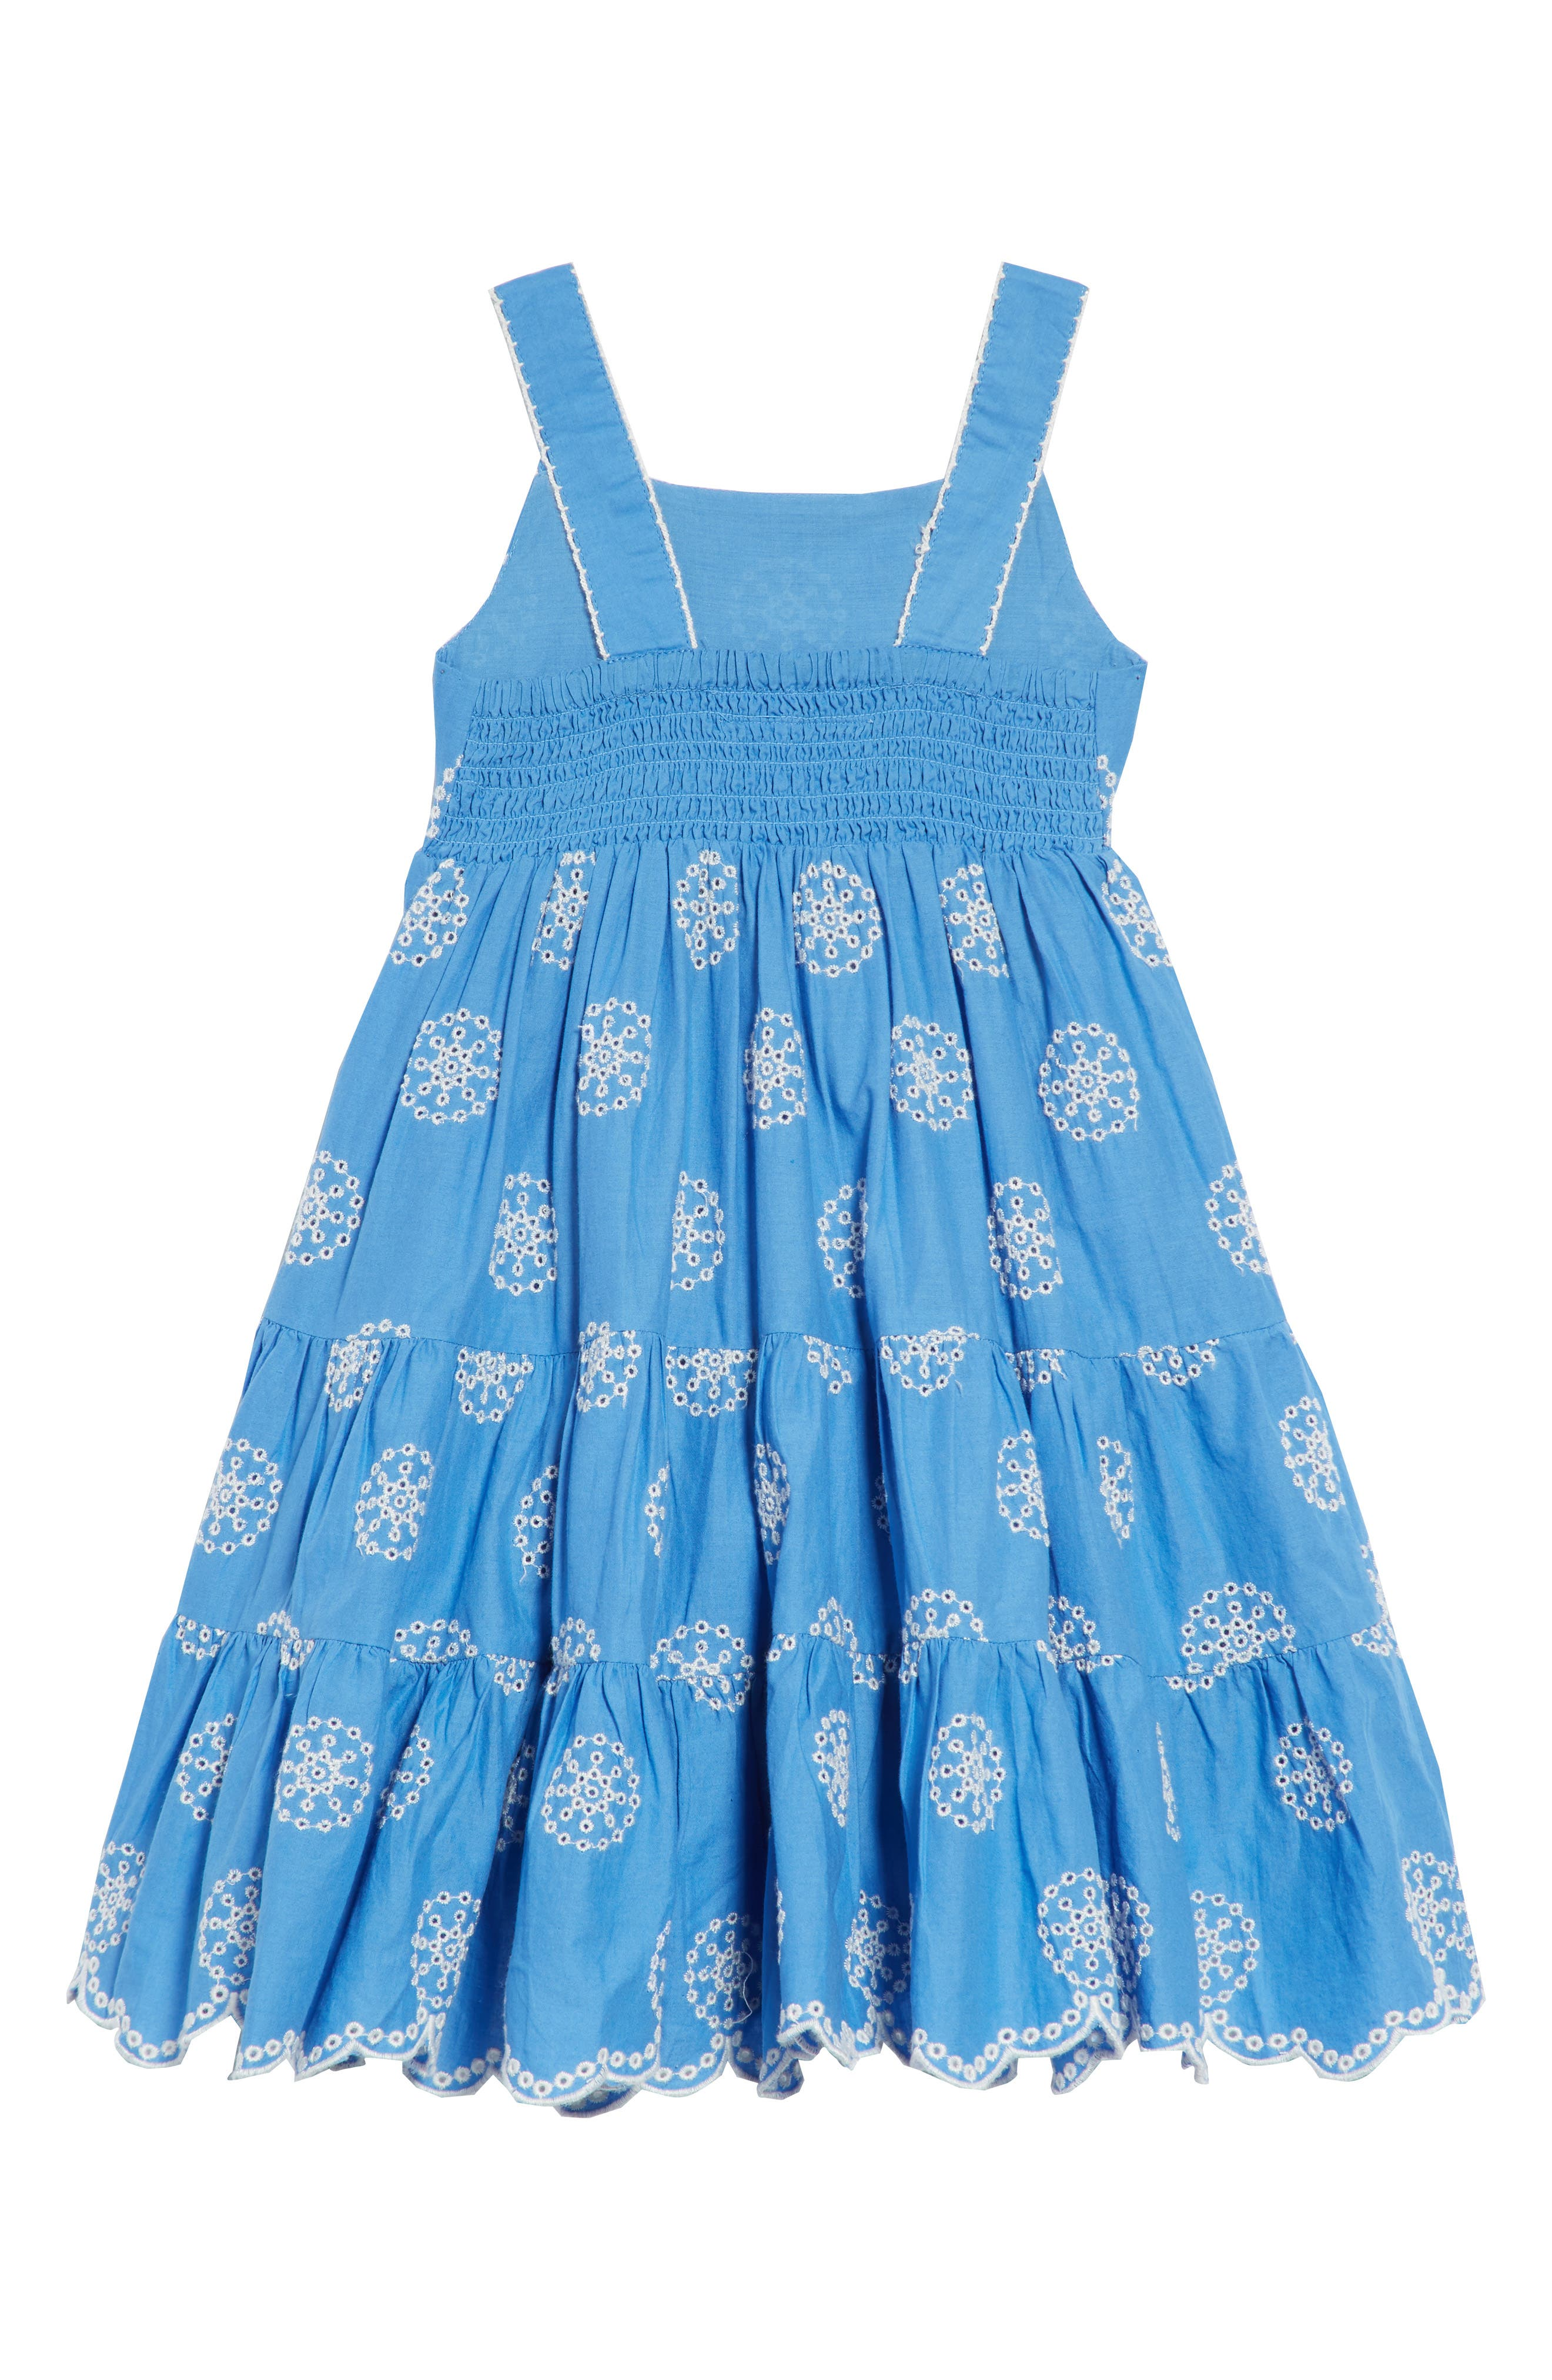 Twirly Tiered Dress,                             Alternate thumbnail 2, color,                             424